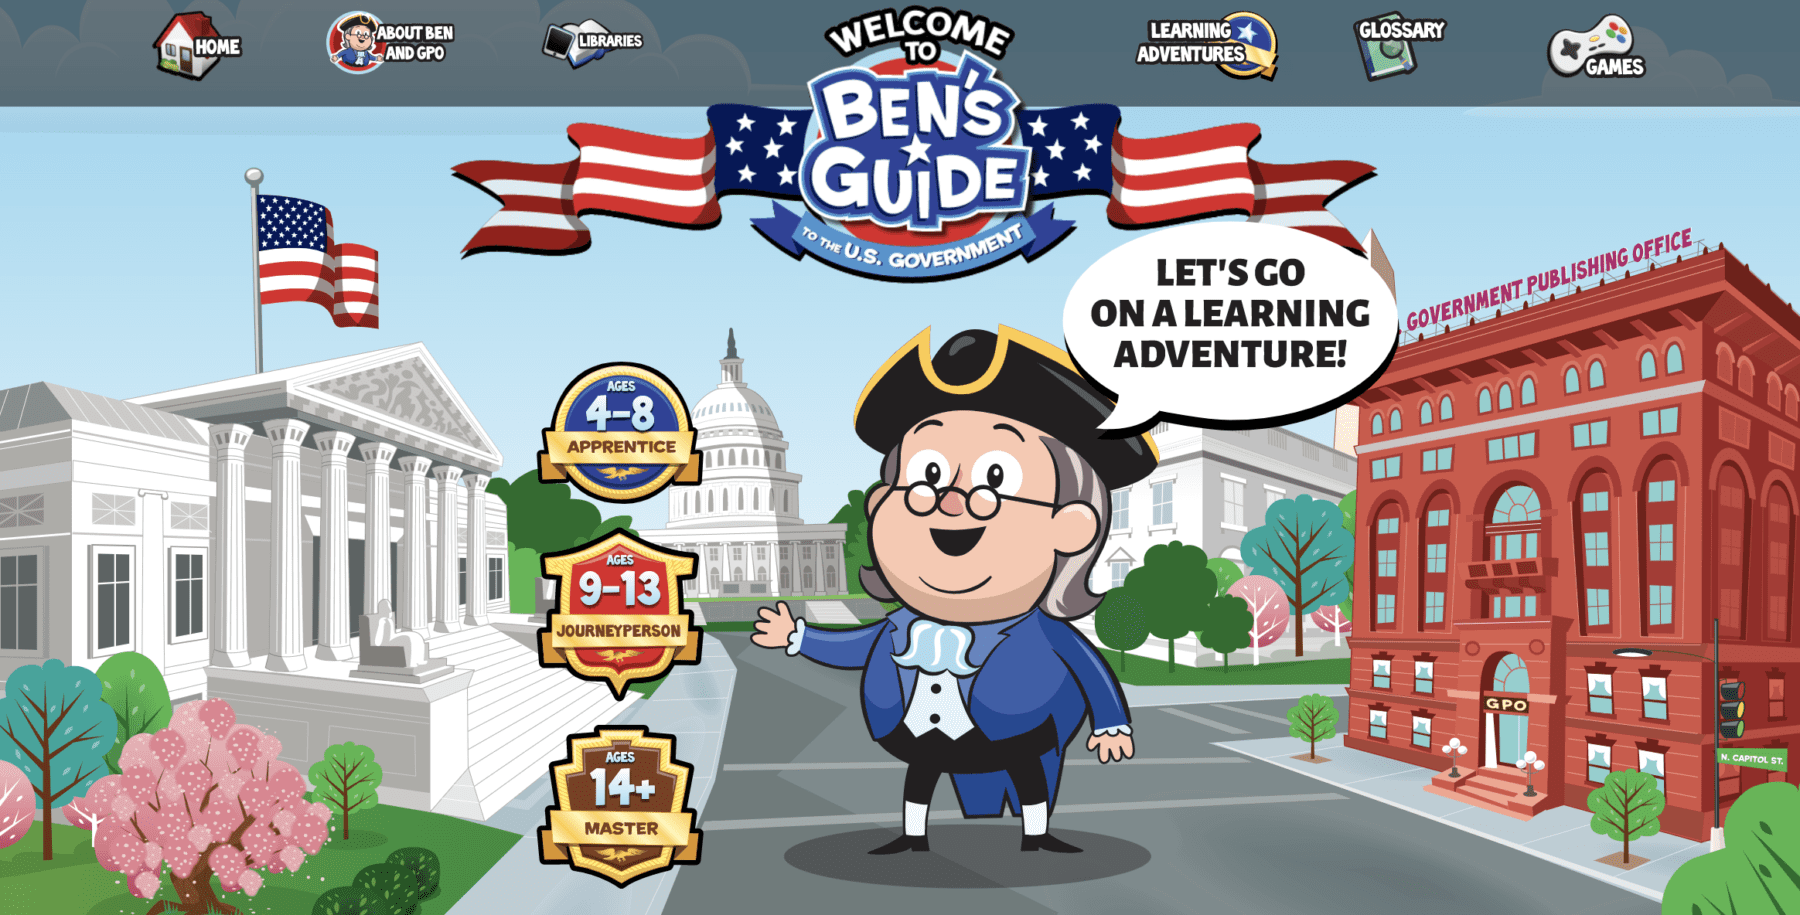 Ben's Guide for ages 4-14+